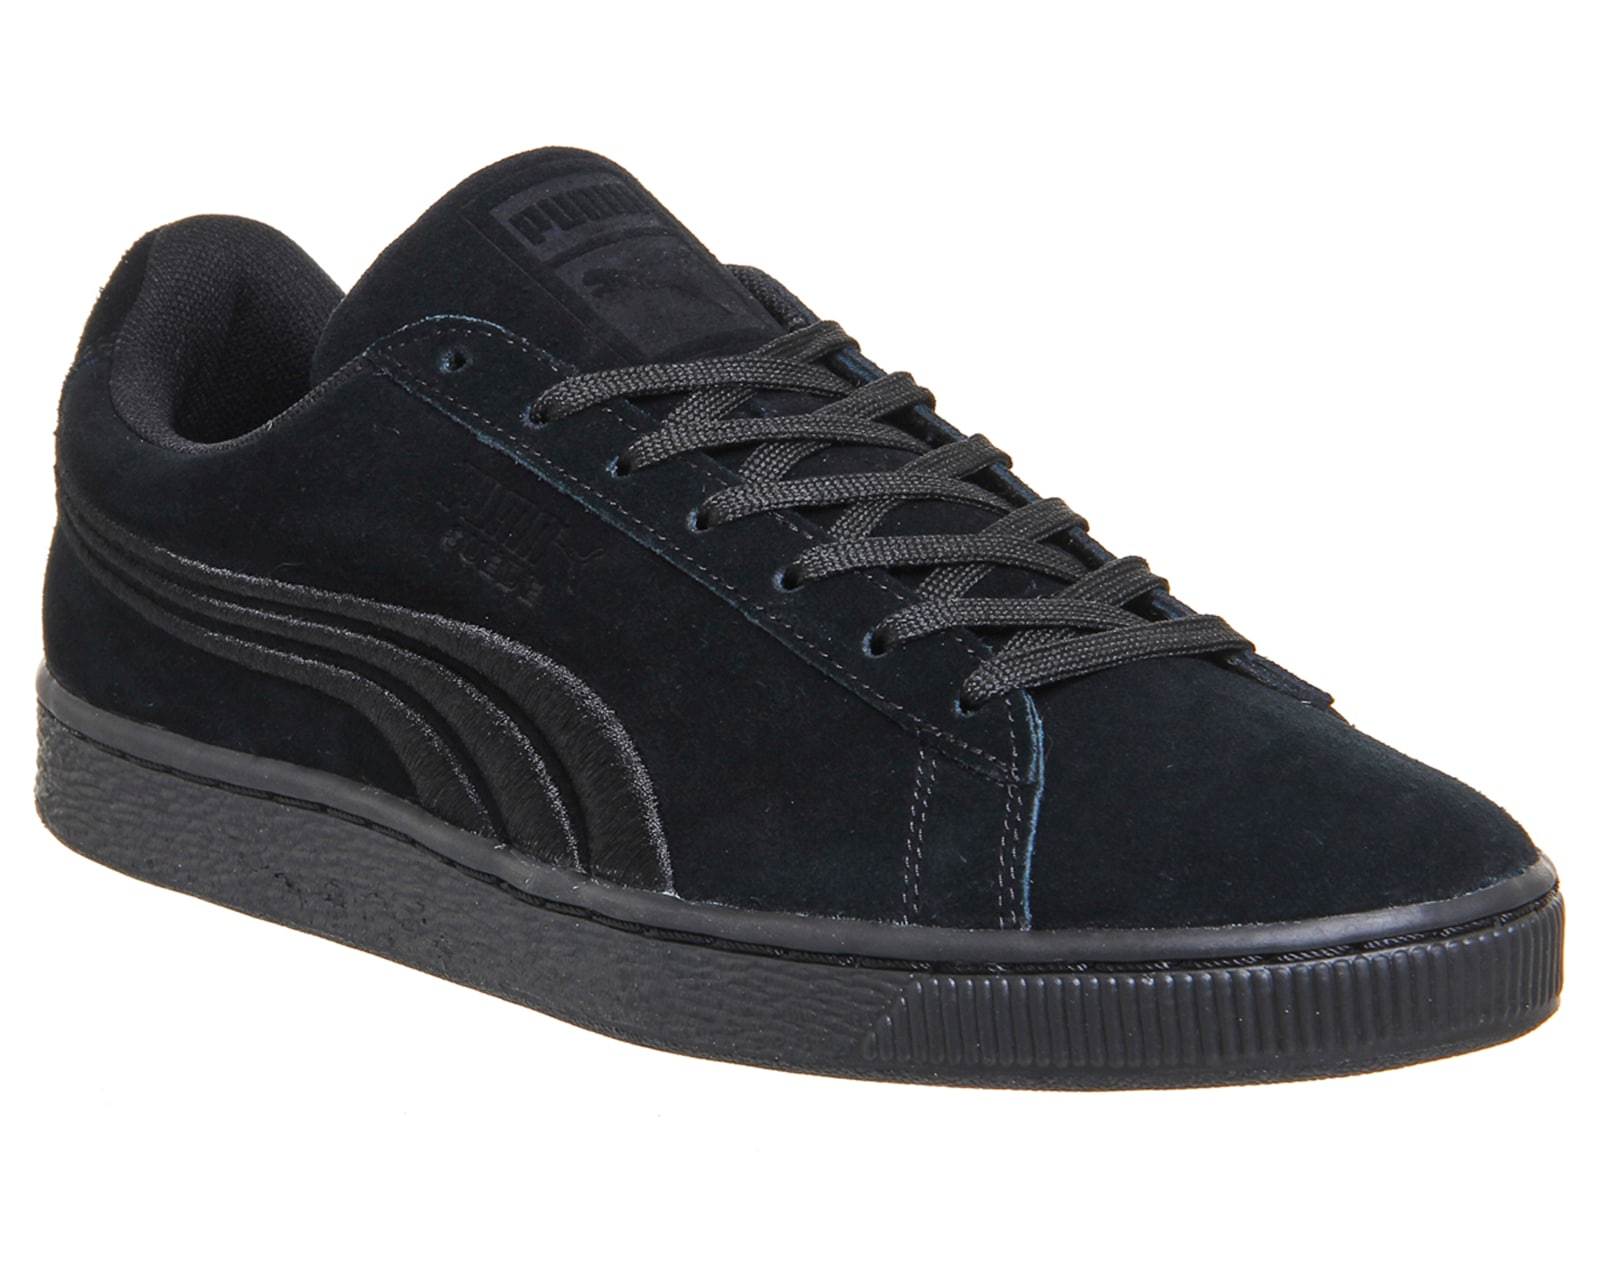 mens puma suede classic black mono badge trainers shoes ebay. Black Bedroom Furniture Sets. Home Design Ideas